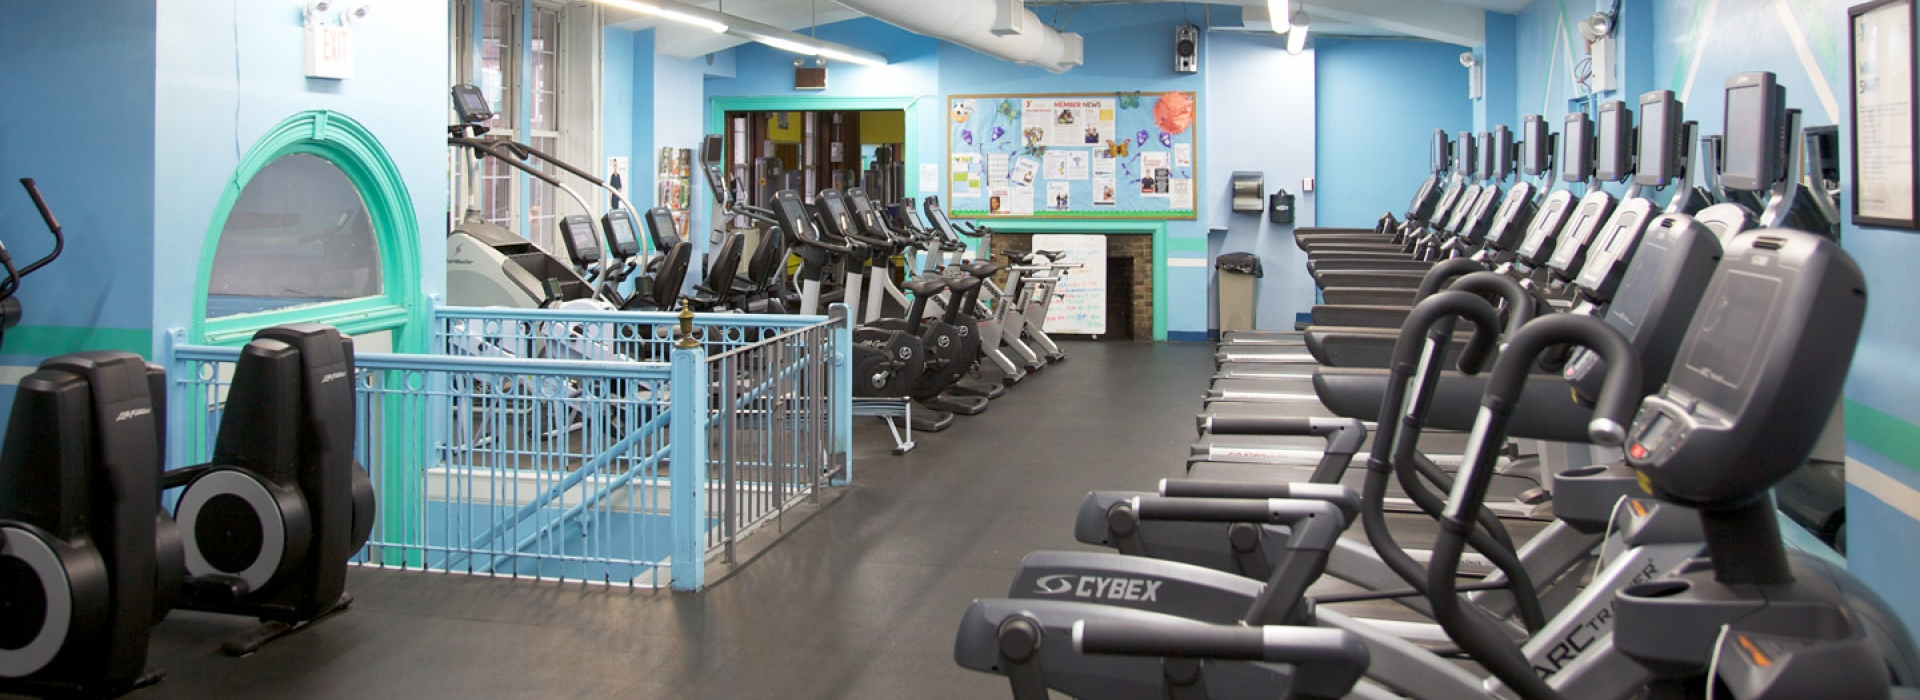 Jamaica YMCA, gym, pool, free fitness classes, child care, and more